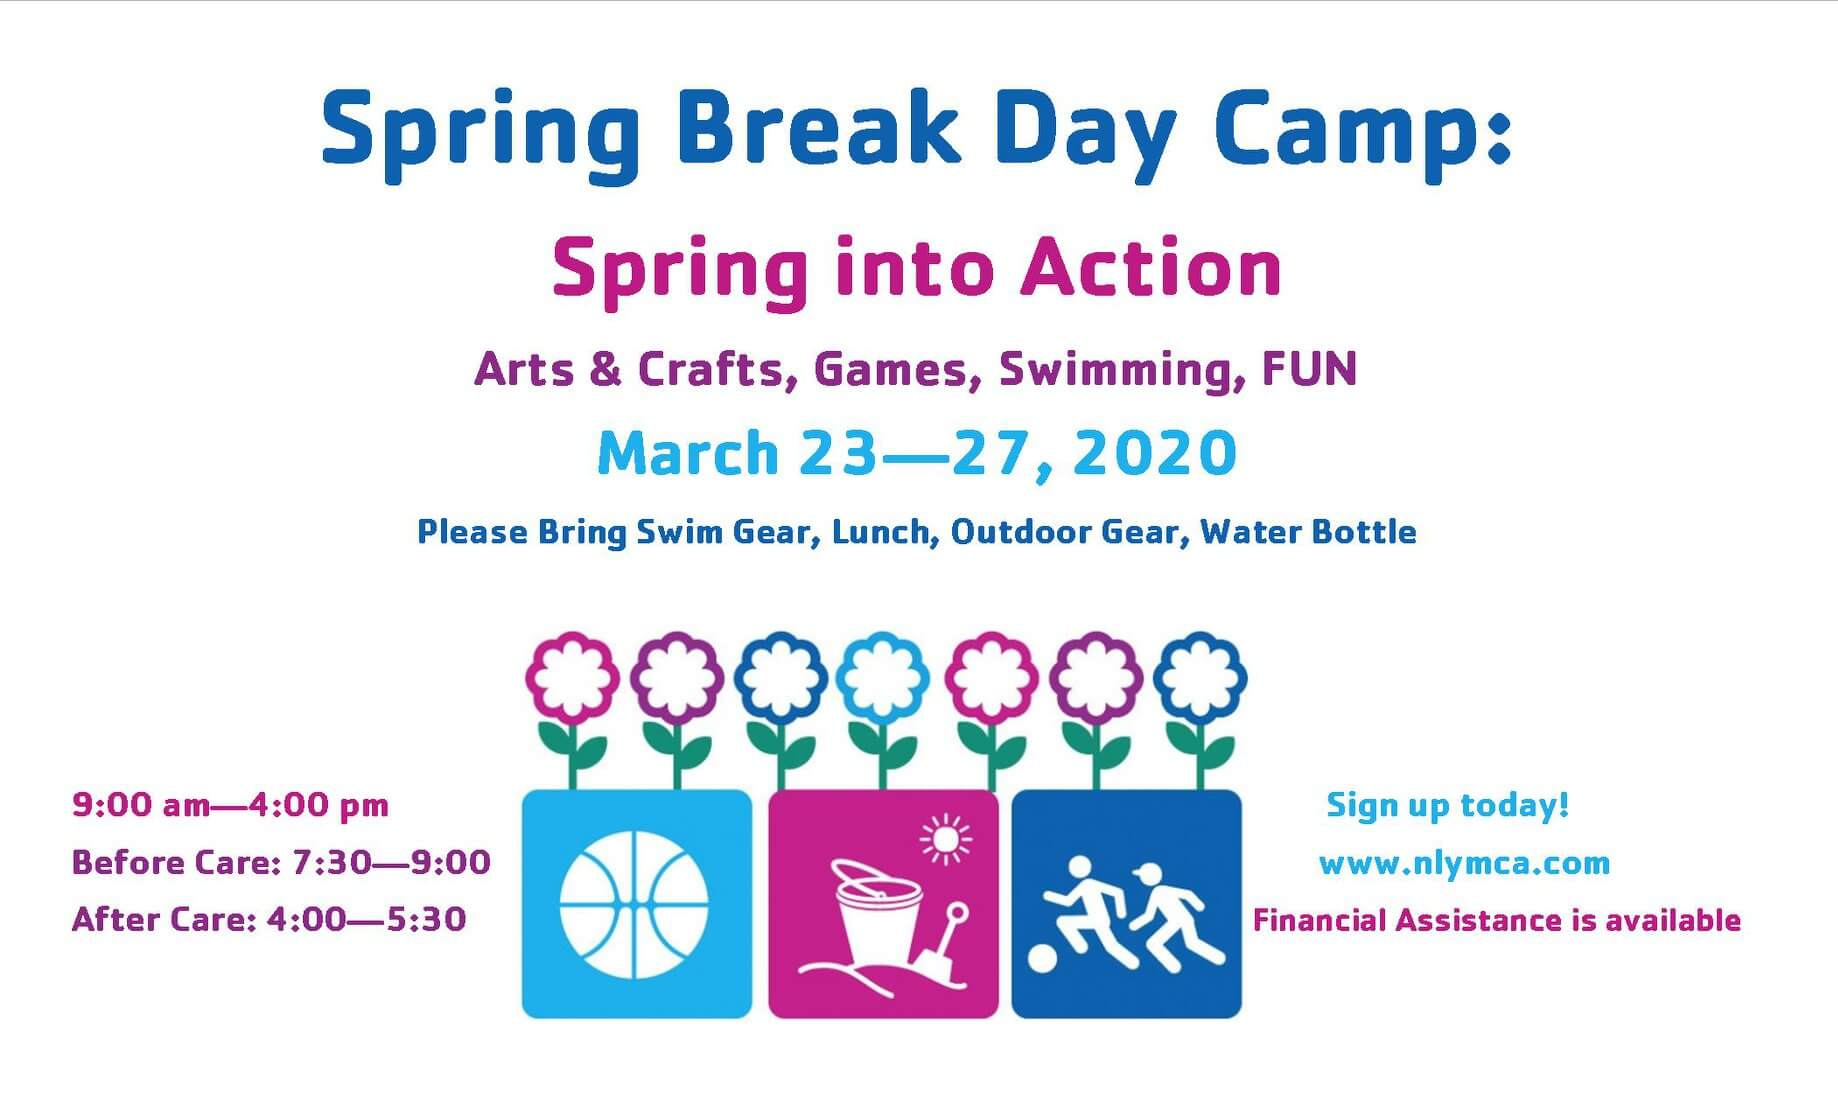 Spring Break DAy Camp: Spring into Action, arts and crafts, games, and swiming, FUN. March 23-27, 2020 Please bring swim gear, lunch, outdoor gear and water bottle. 9am-4pm Before care is from 7:30-9am. After care is 4pm- 5:30. Sign up today. www.nlymca.com. Financial assistance is available.